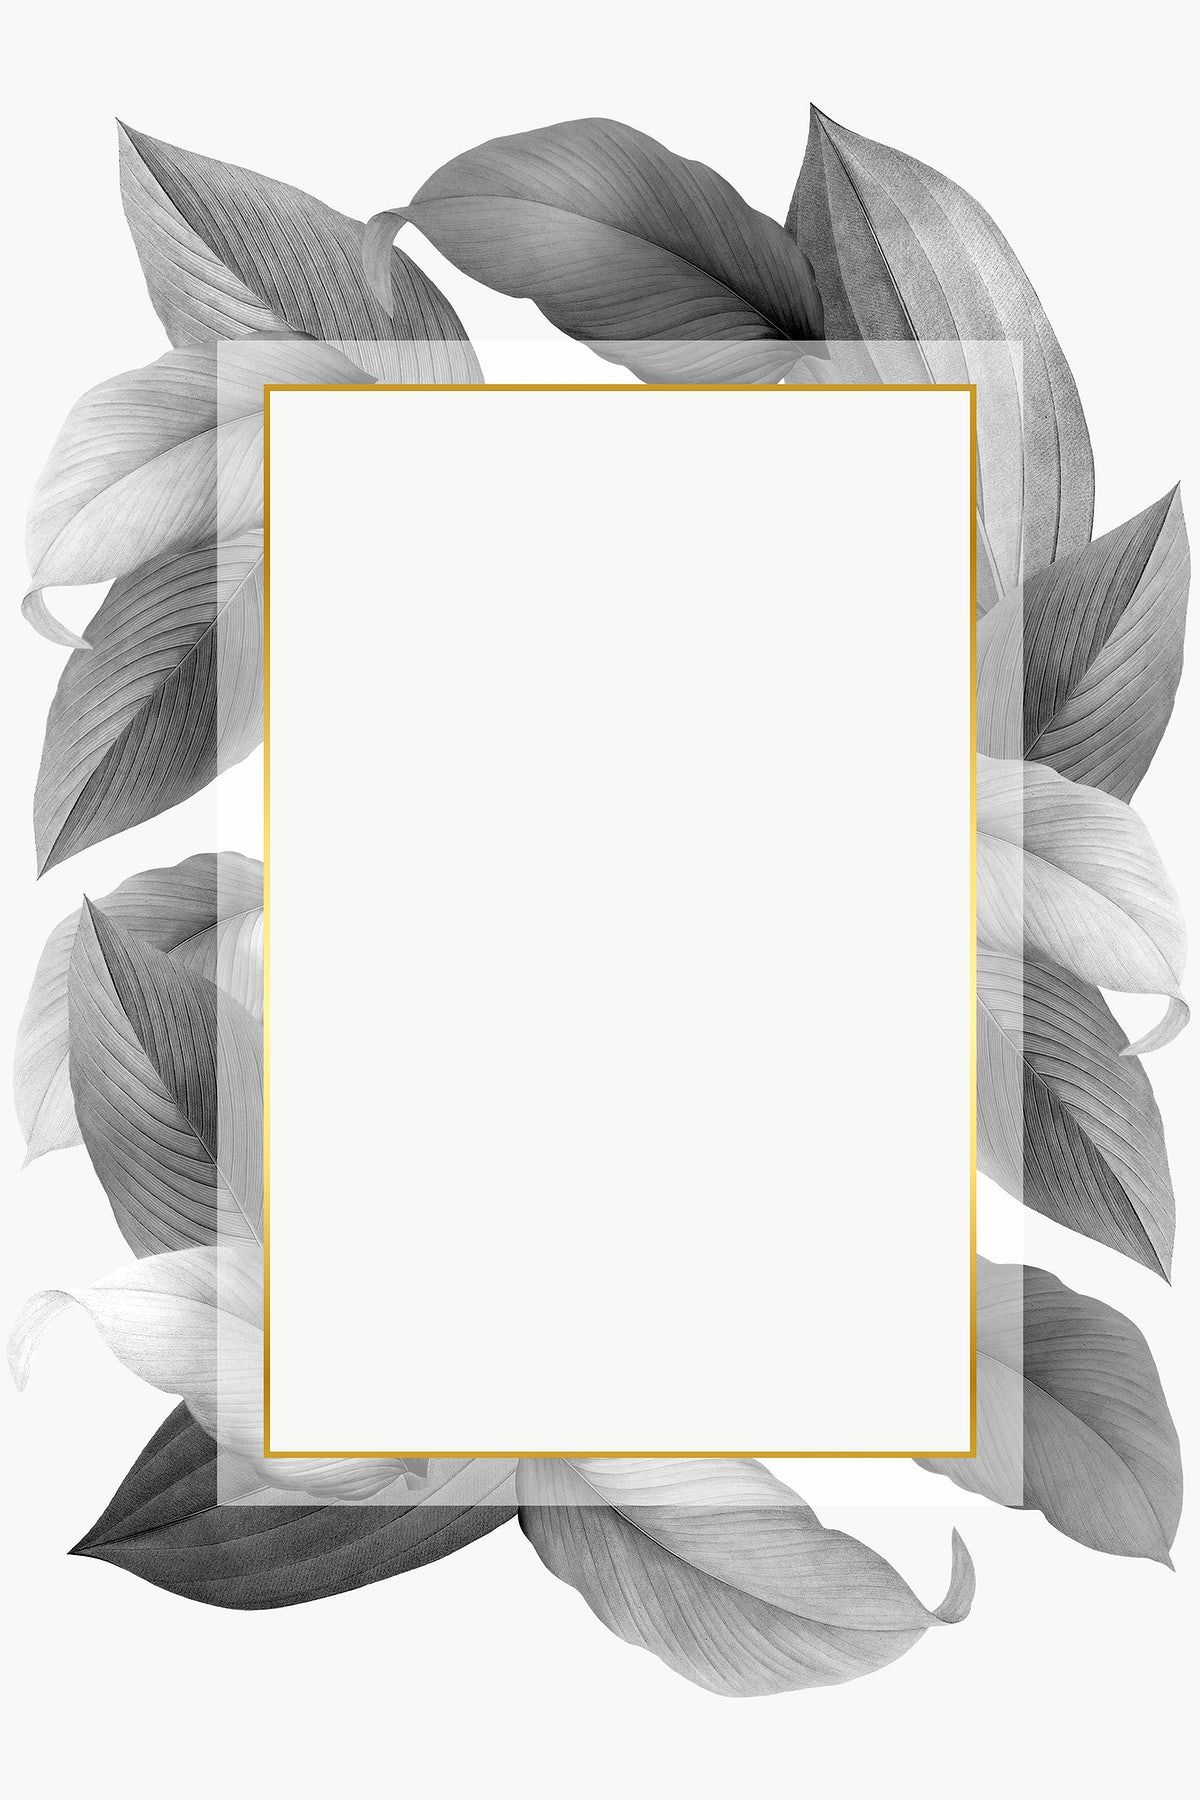 Grey Leaves With Golden Rectangle Frame Design Element Premium Image By Rawpixel Com Frame Design Photo Collage Template Floral Poster